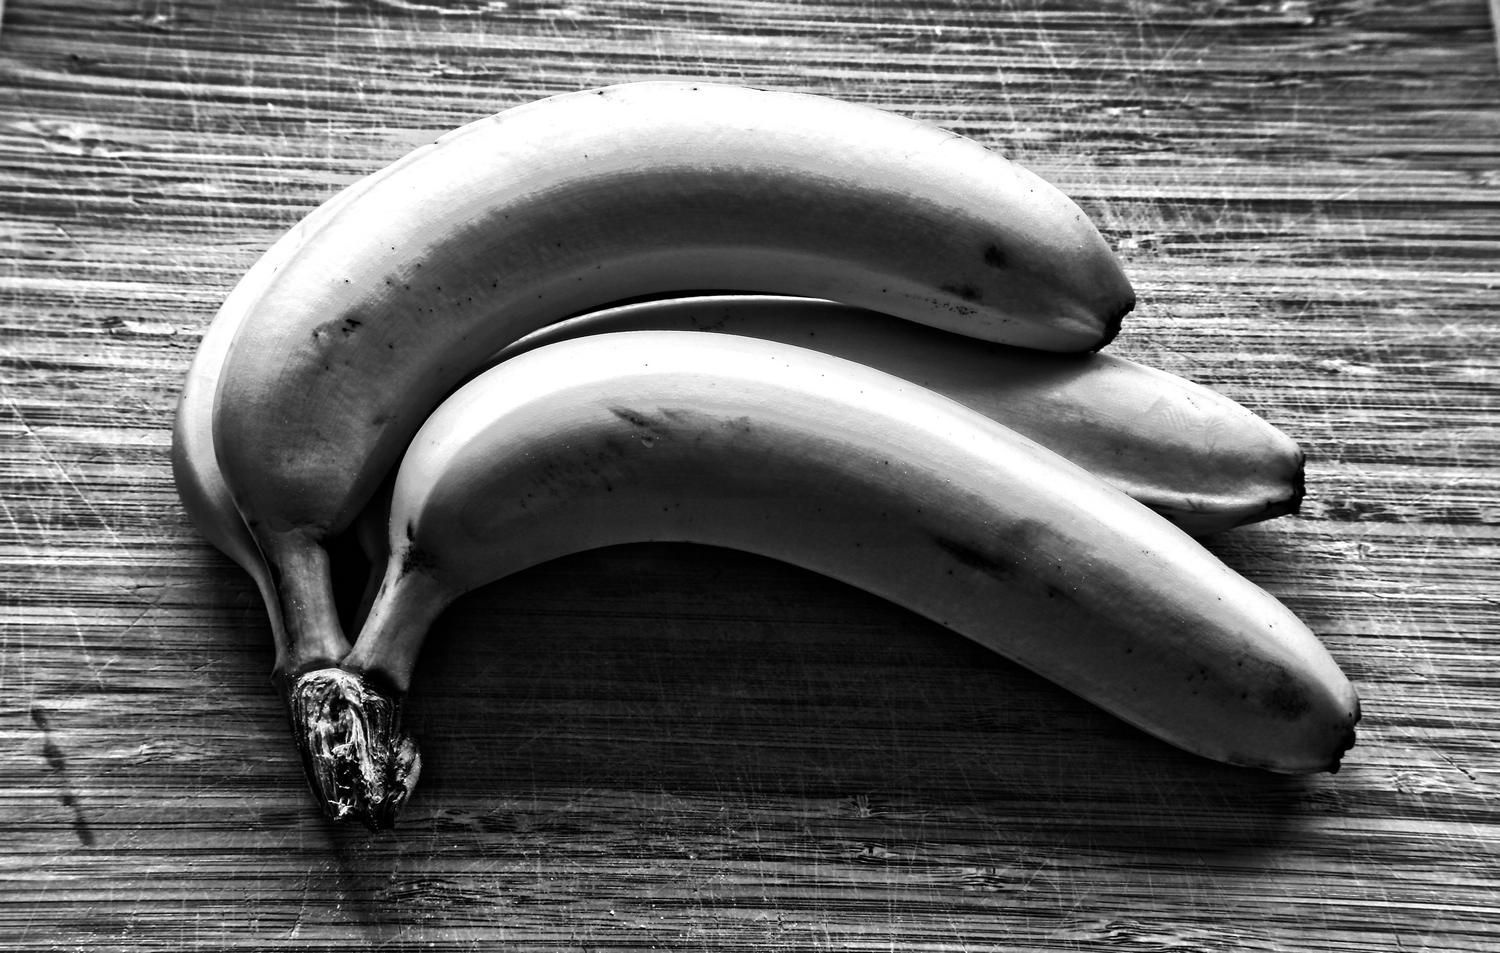 - Tough, urban bananas -  - taken with Sony DSC-R1 - Tony Karp, design, art, photography, techno-impressionist, techno-impressionism, aerial photography , drone , drones , dji , mavic pro , video , 3D printing - Books -